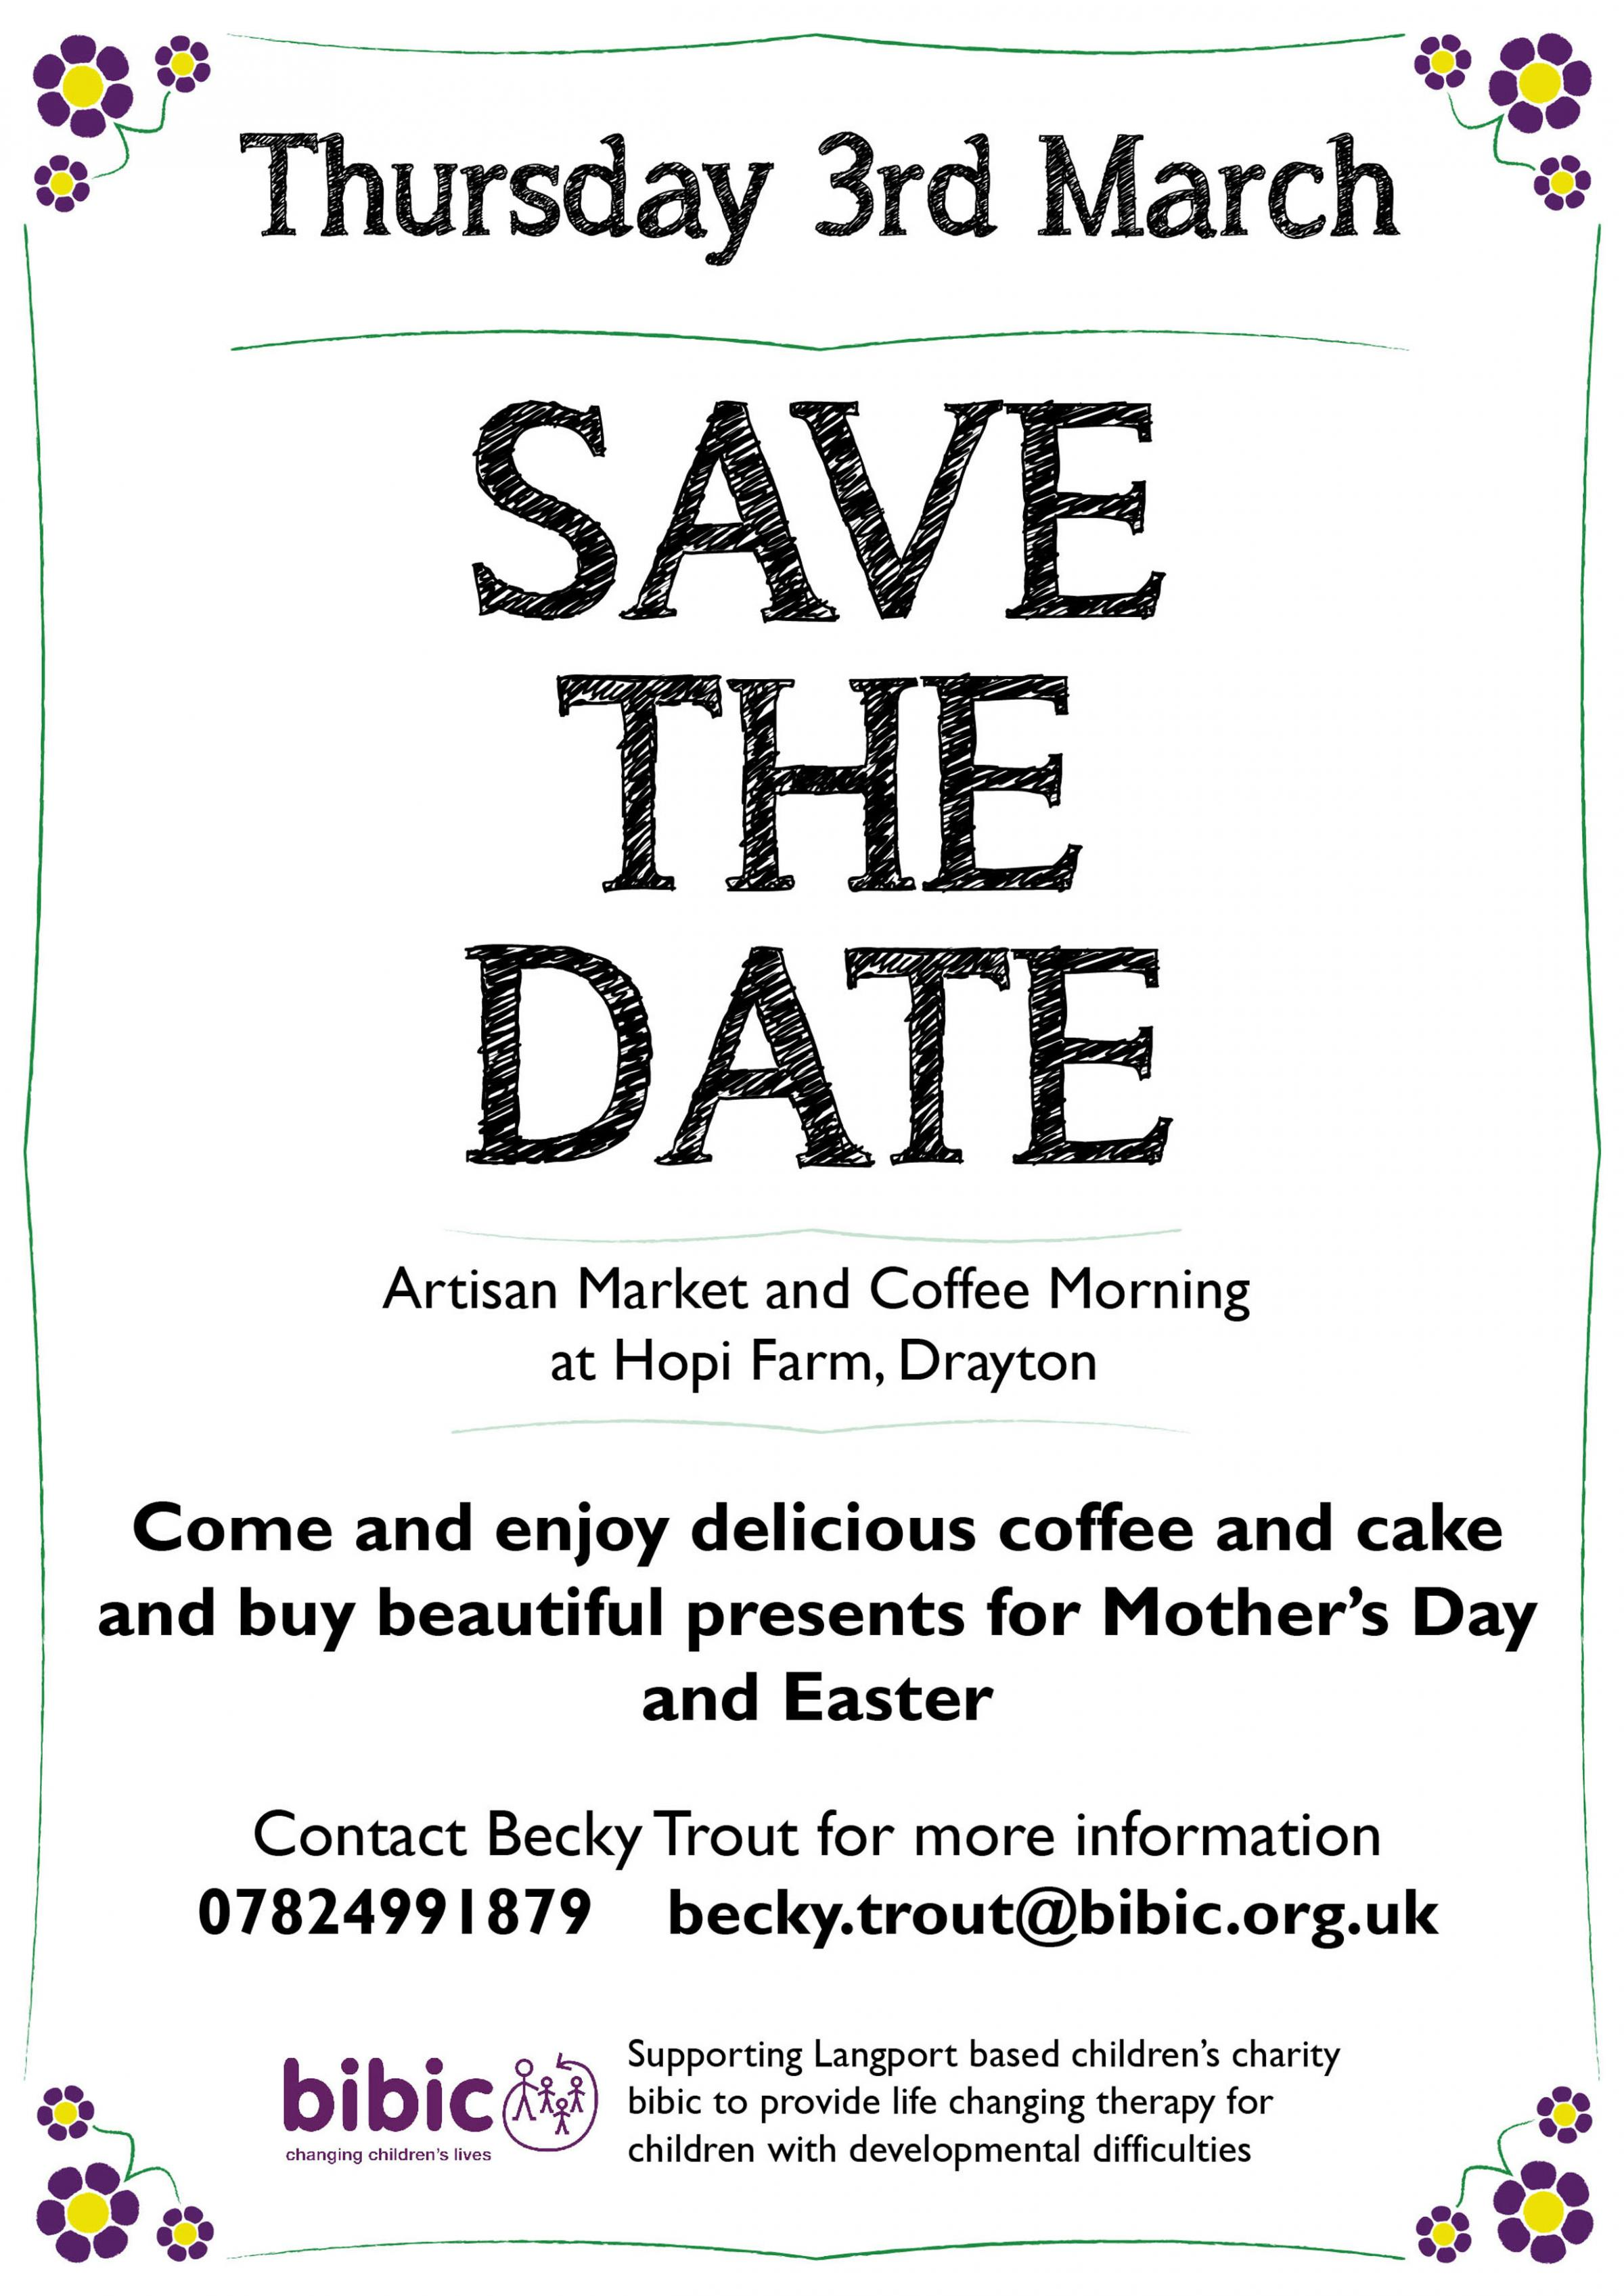 Artisan Market and Coffee Morning